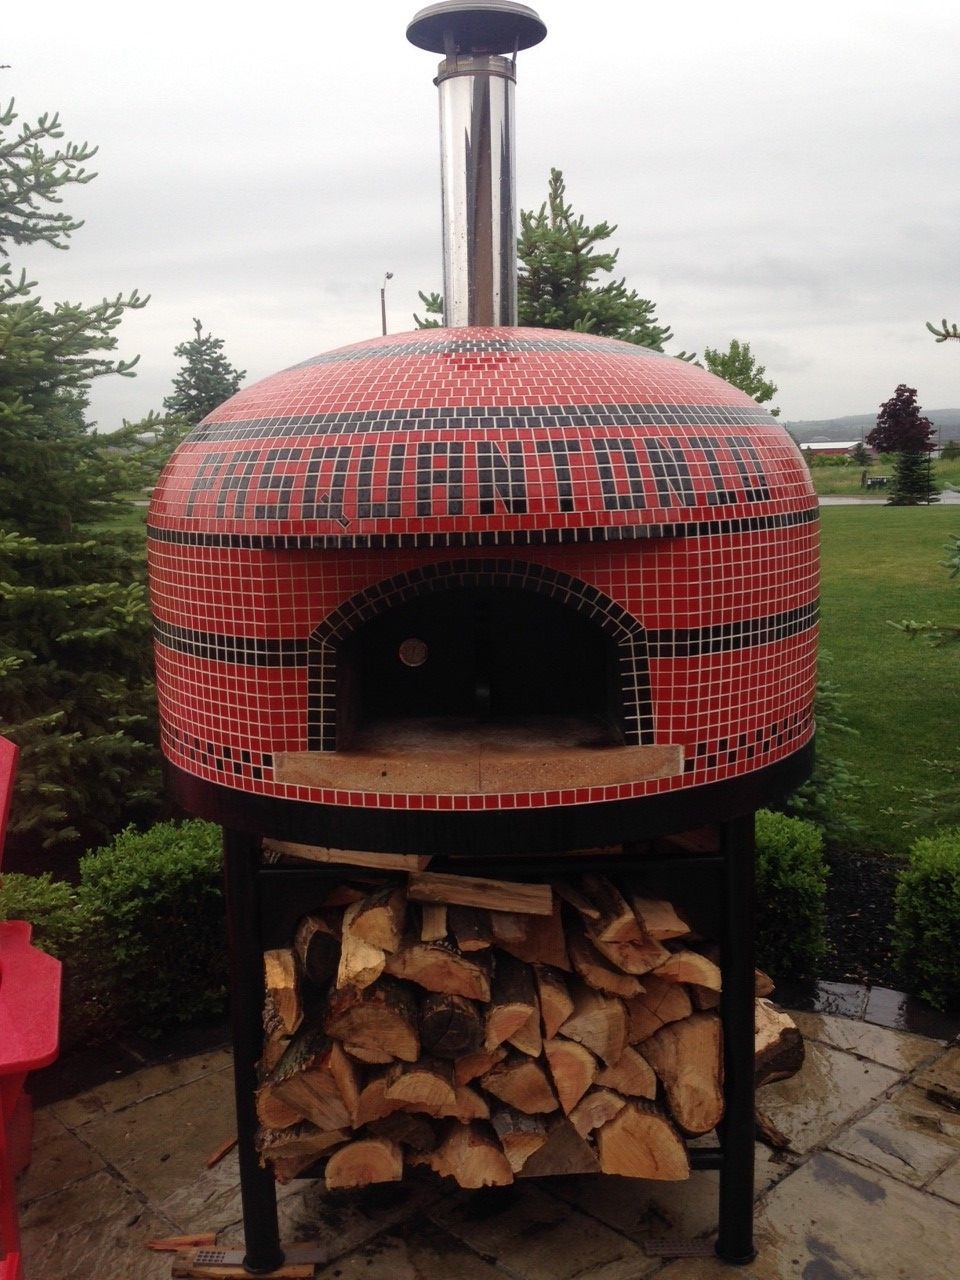 Pizza Oven Brick Oven Wood Fired Pizza Ovens Pizza Oven Outdoor Kitchen Outdoor Bbq Kitchen